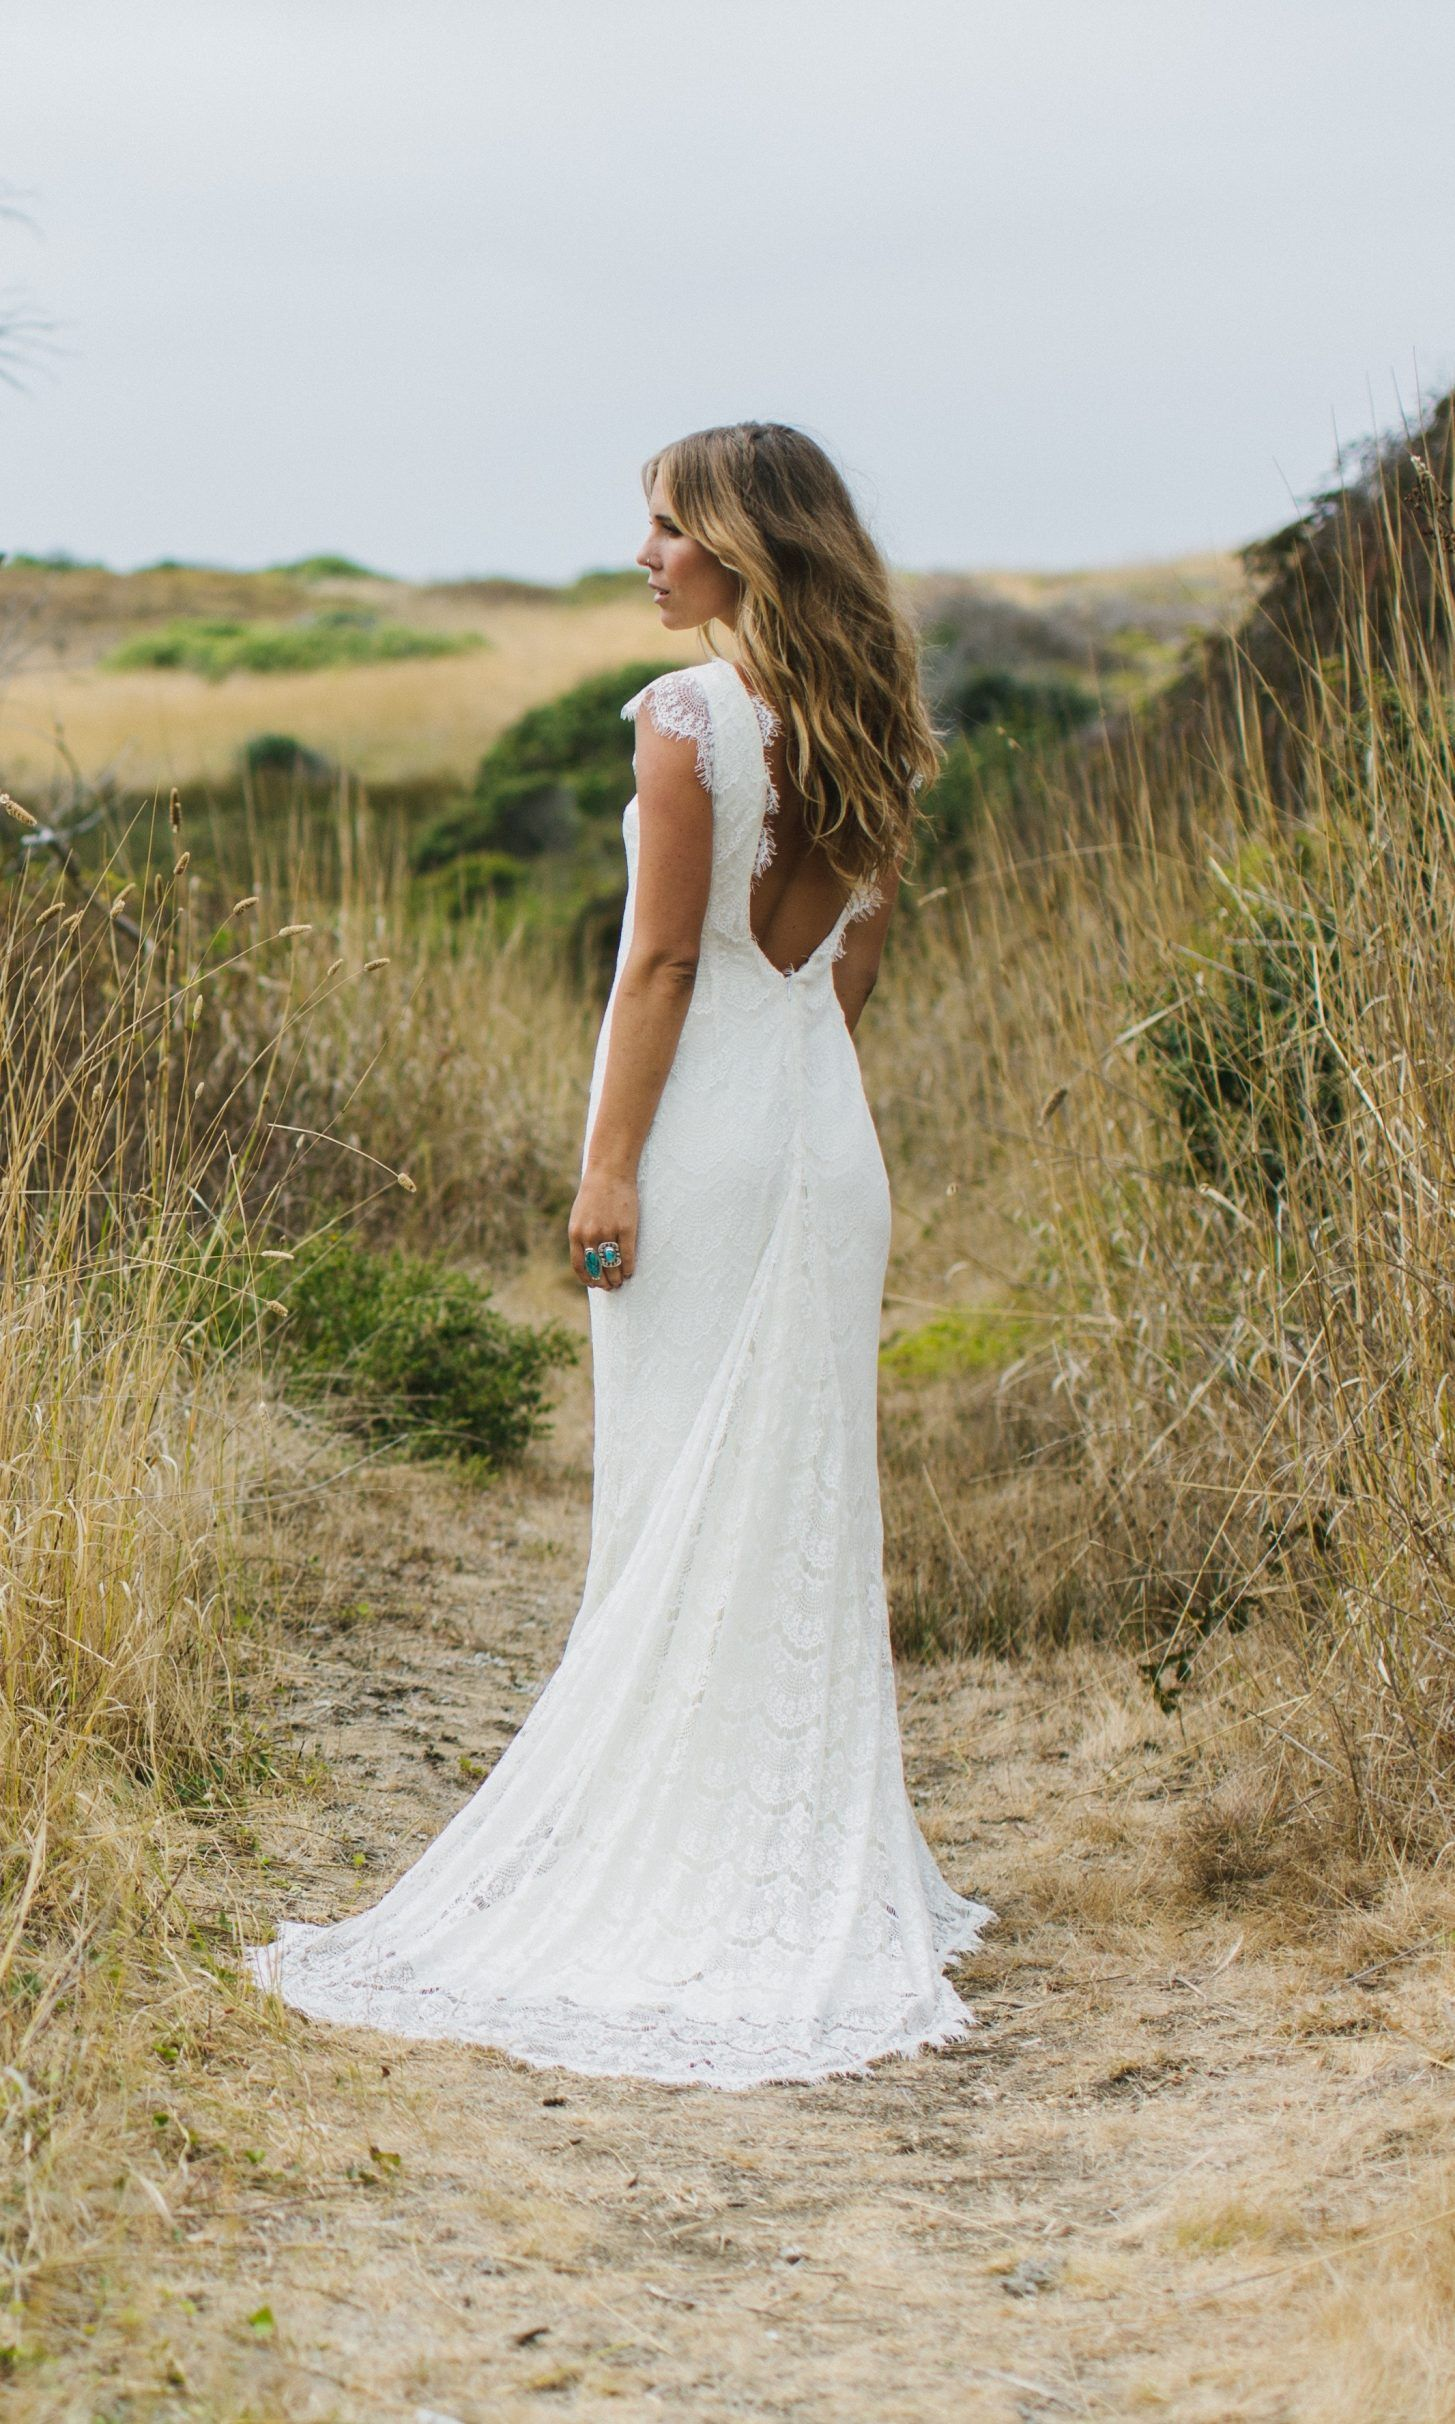 Fin By Daughters Of Simone Tight Wedding Dress Wedding Dresses Short Wedding Dress [ 2424 x 1455 Pixel ]